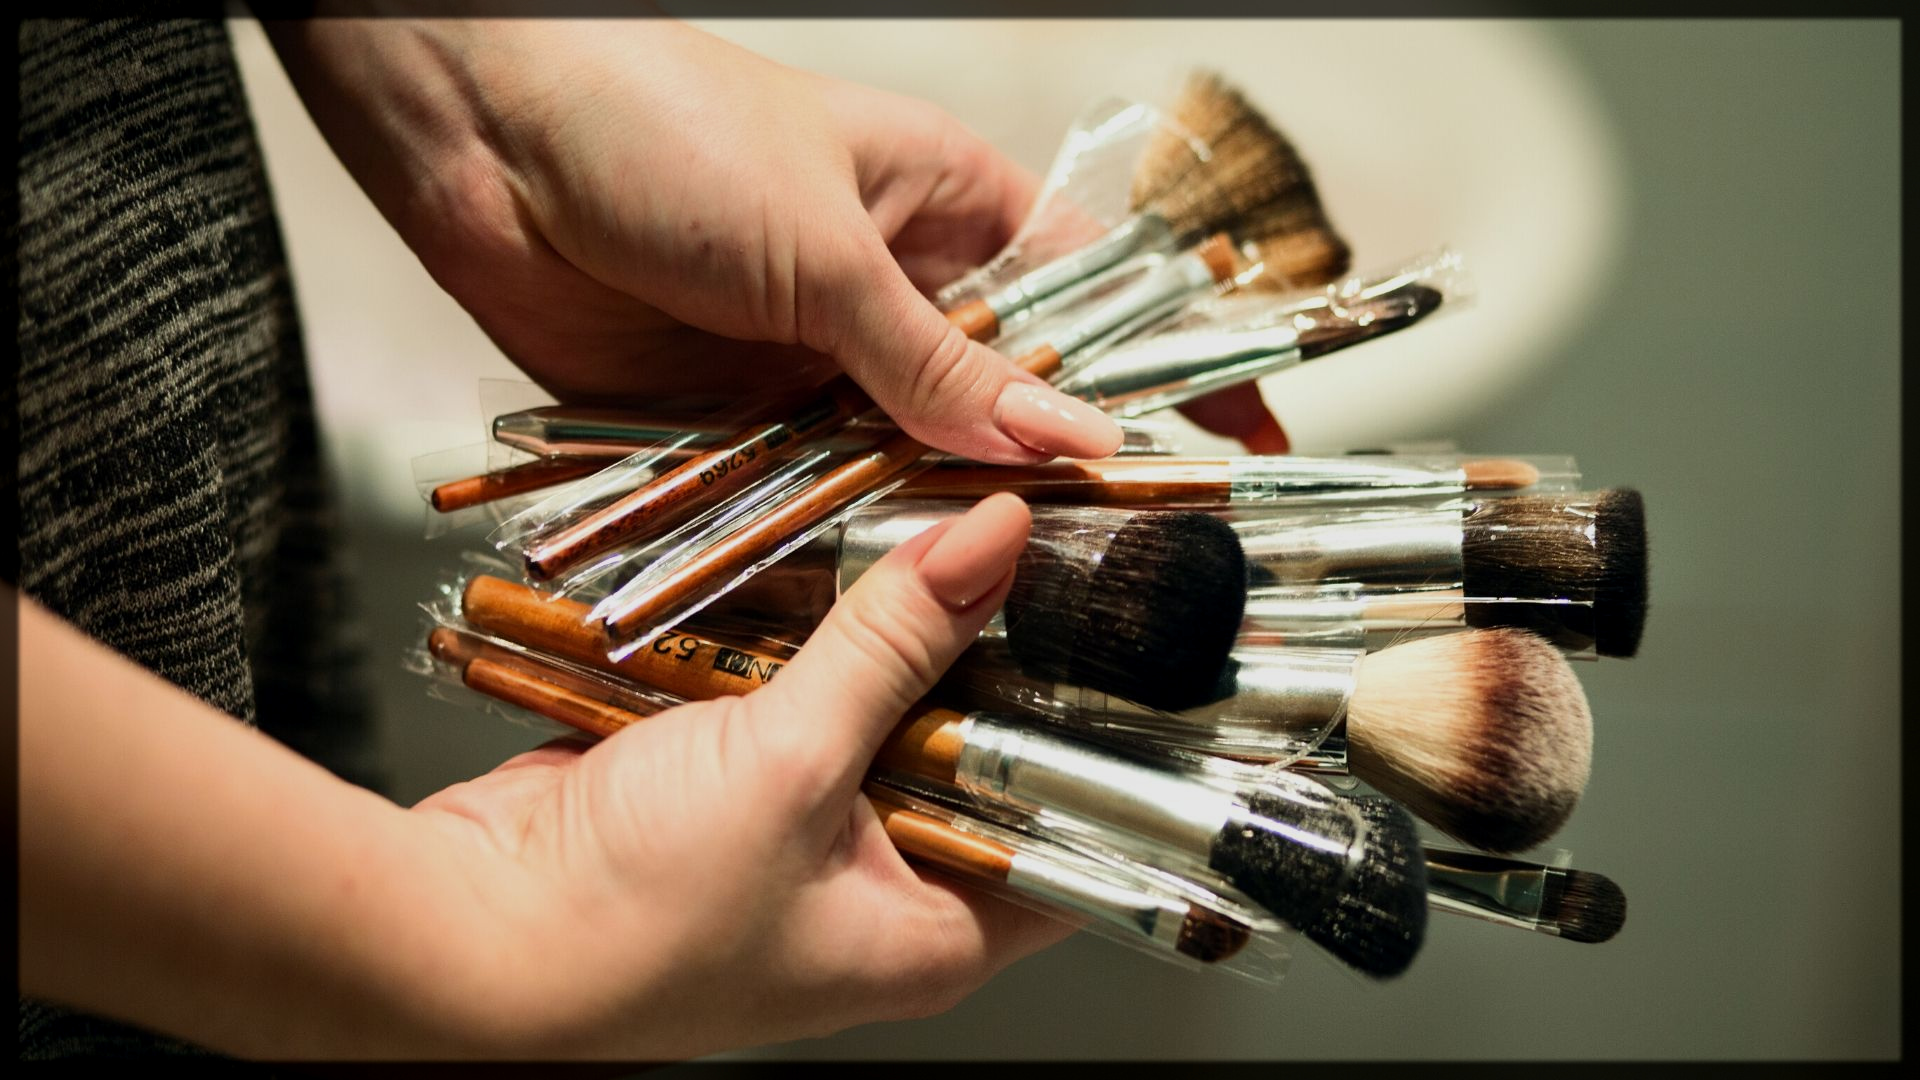 Use Clean Makeup Products & Brushes